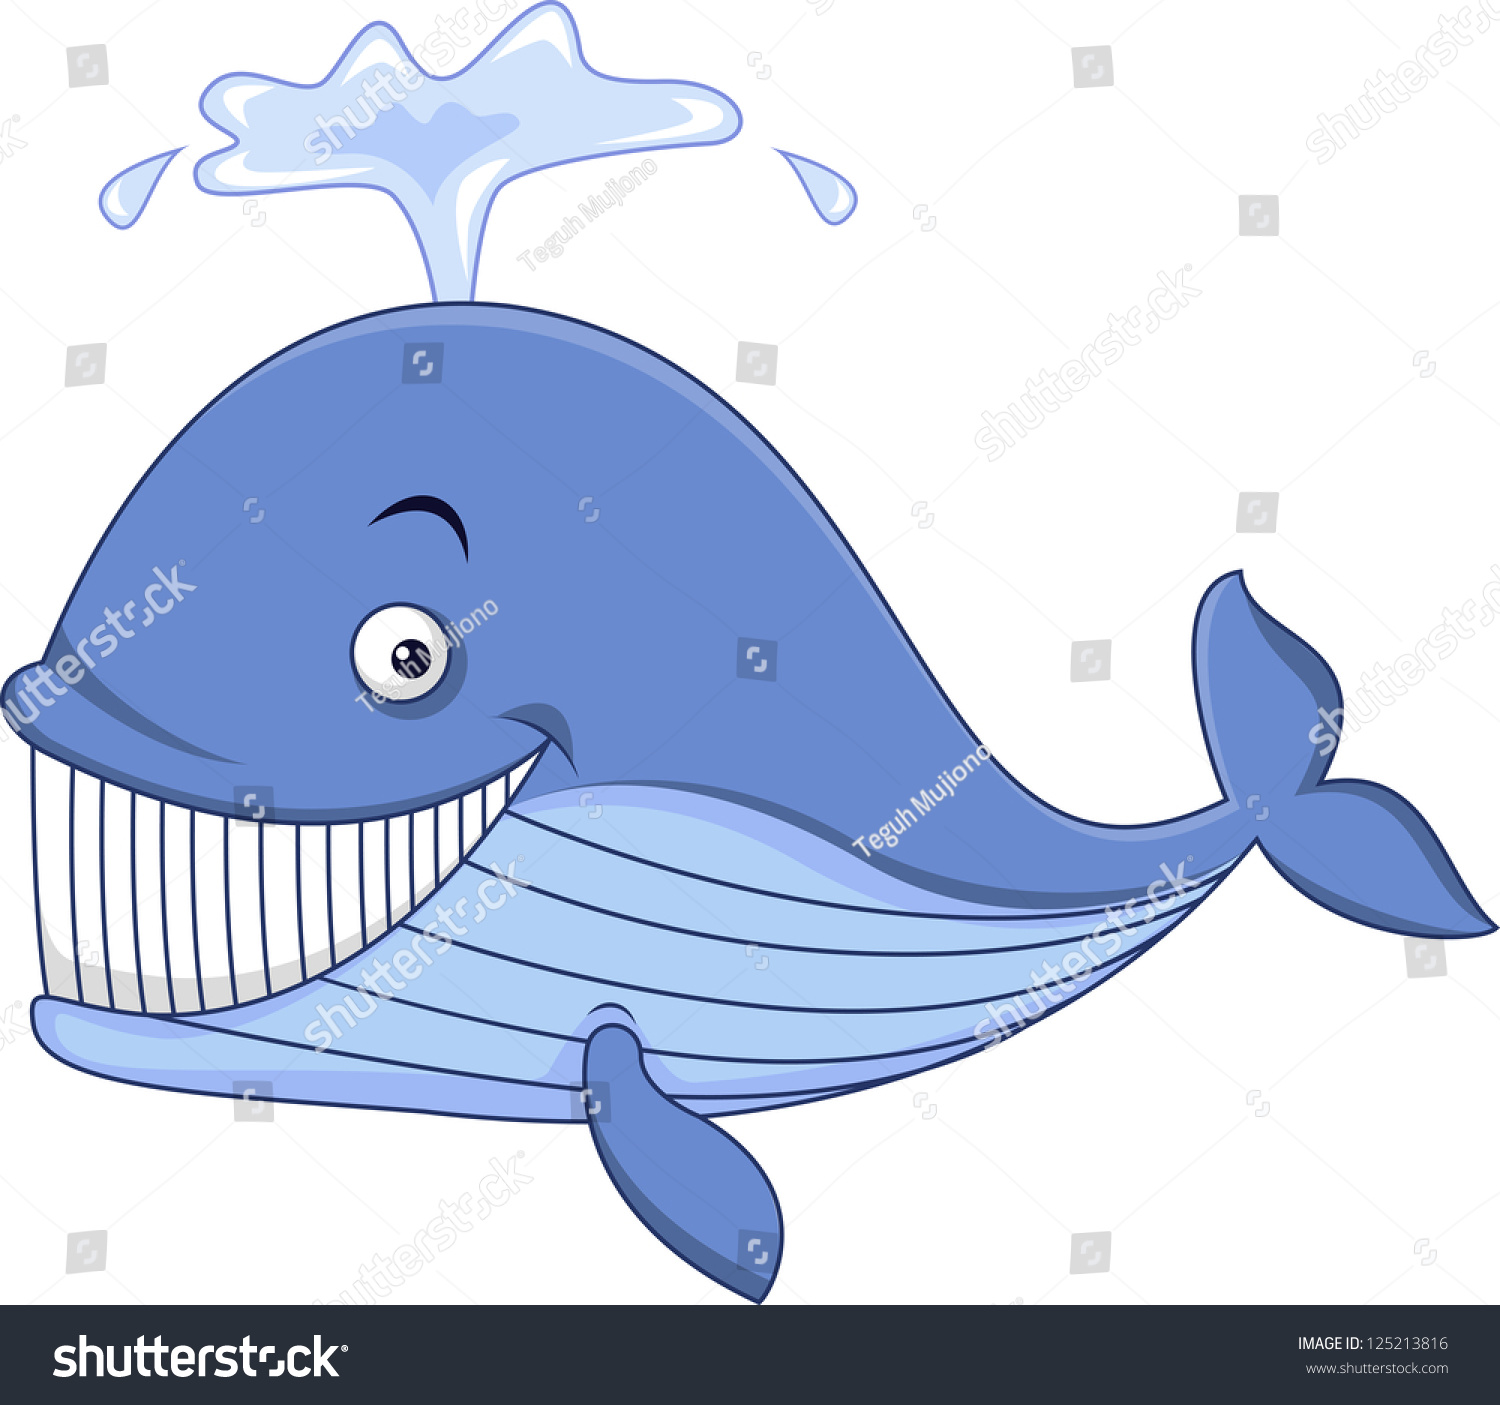 Cute whale in water cartoon isolated illustration stock photography - Happy Blue Whale Cartoon